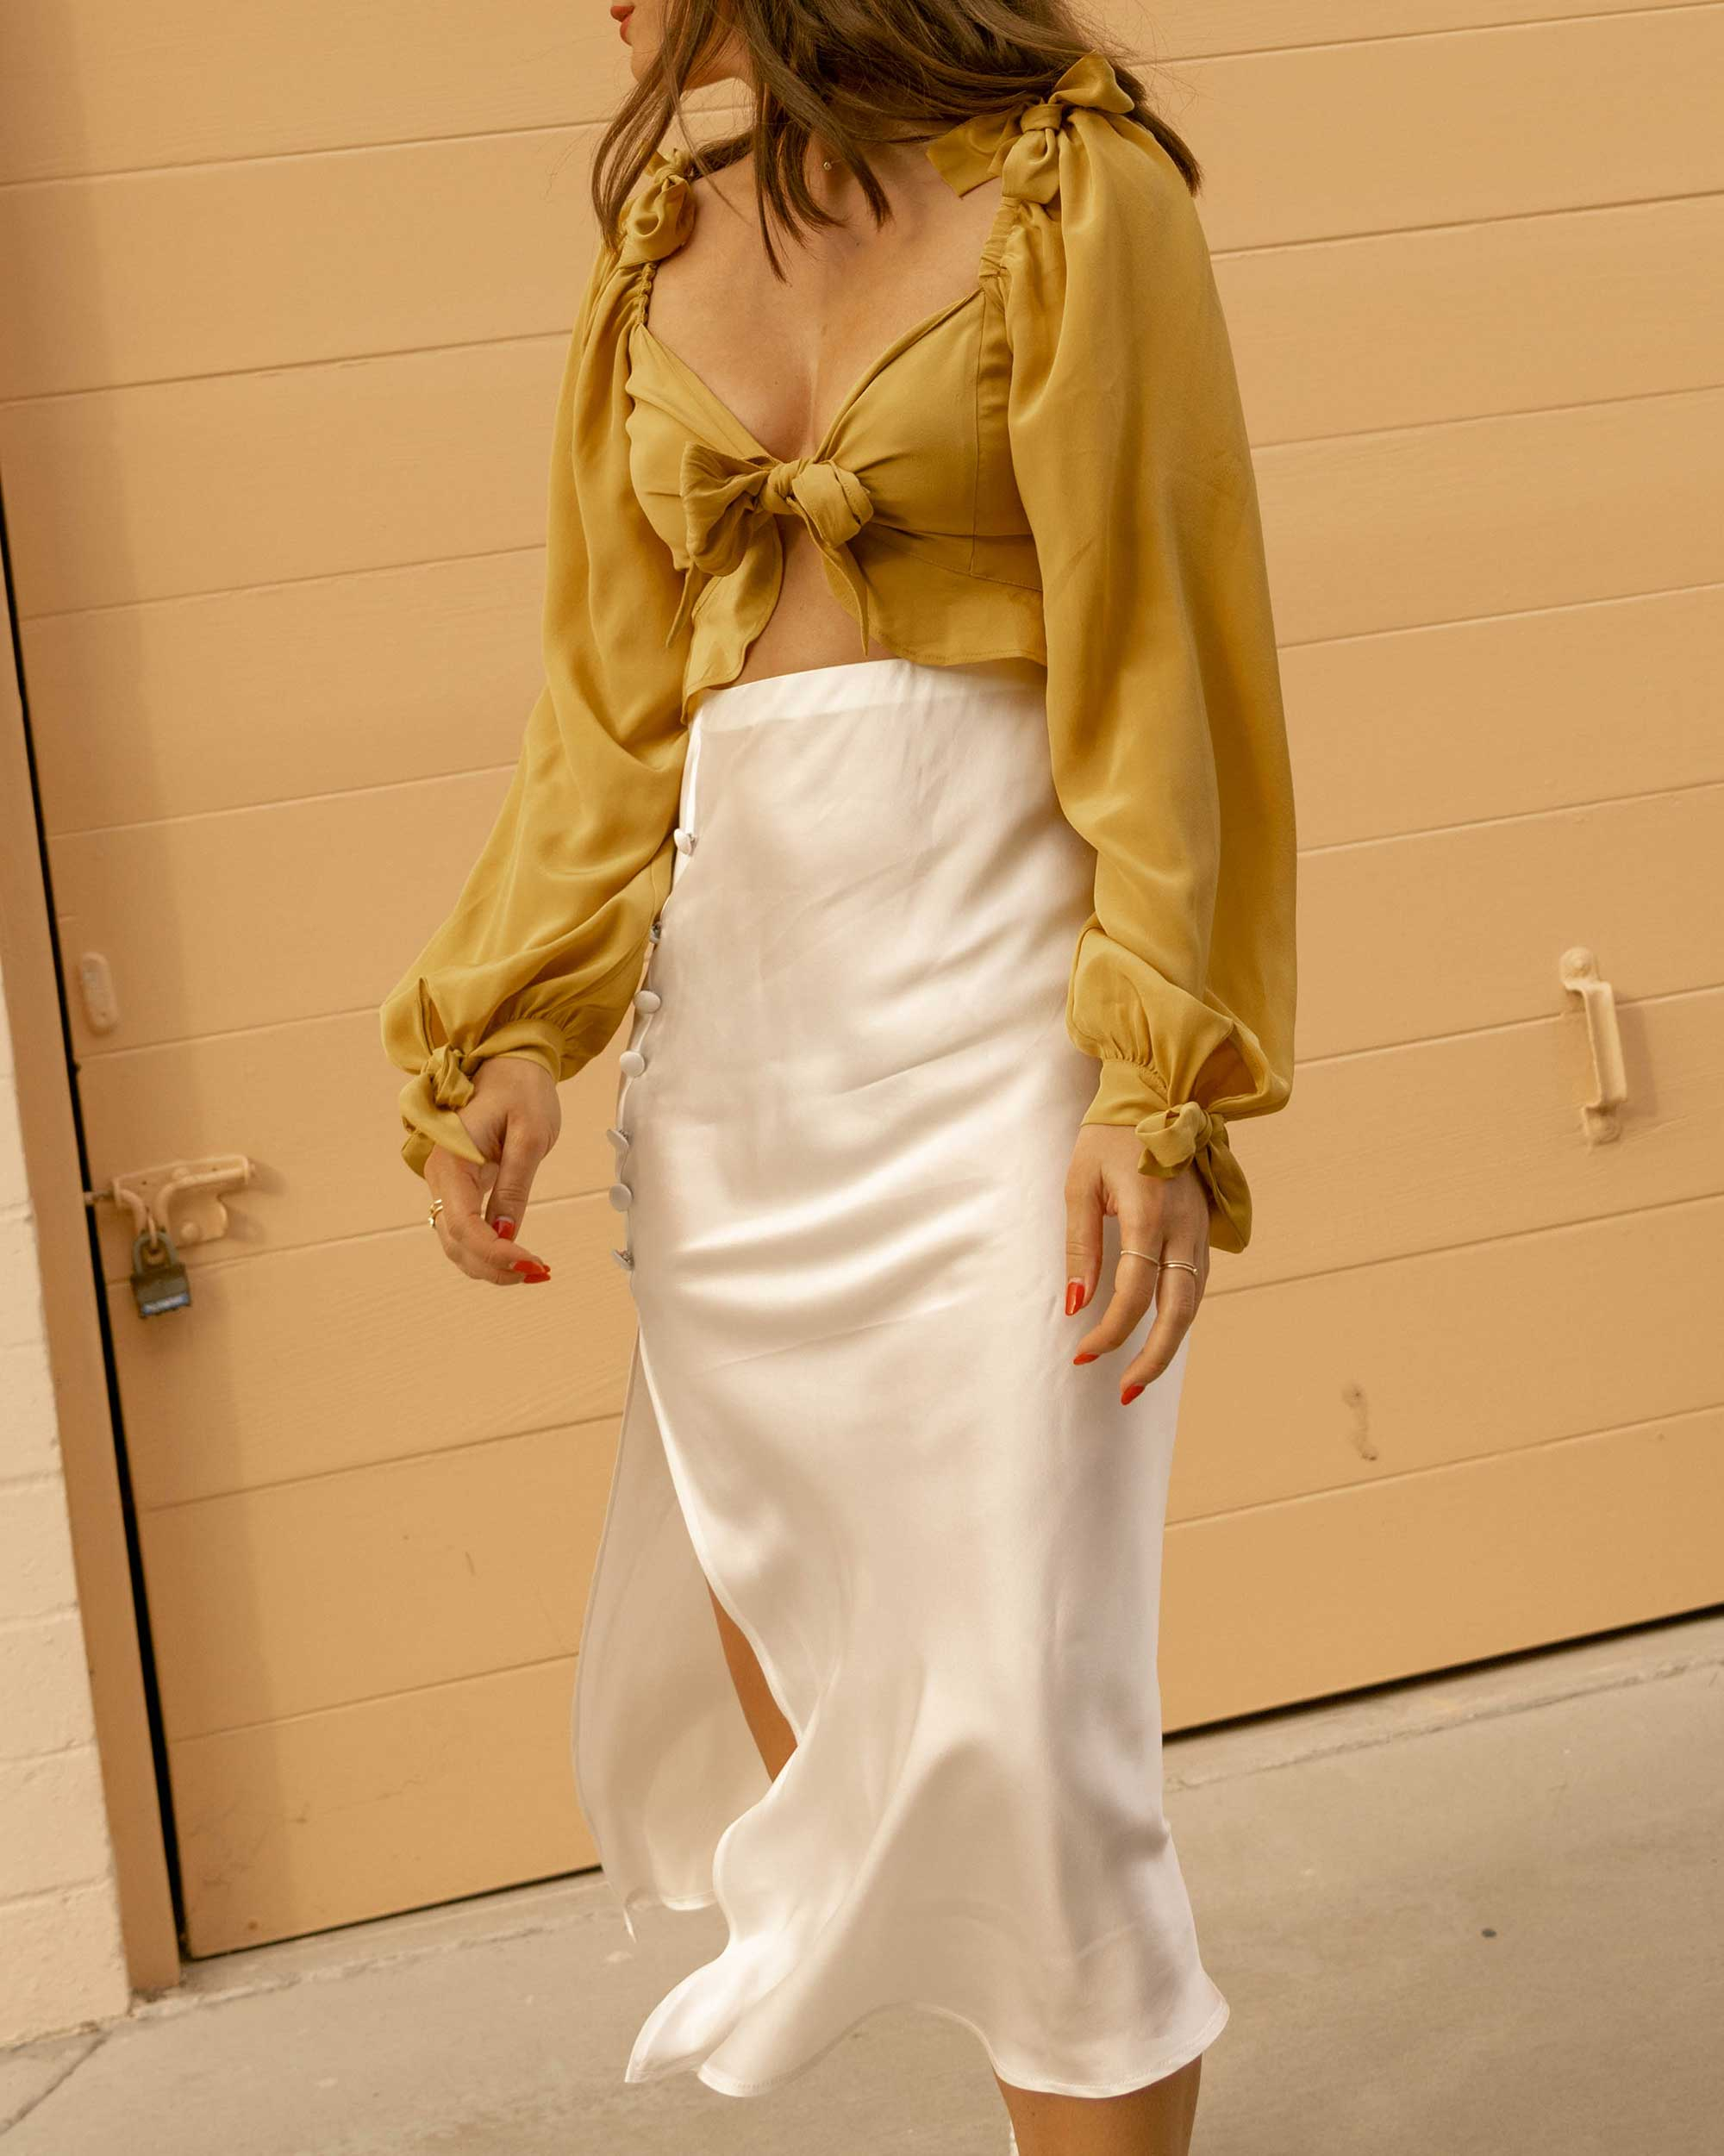 Click to shop outfit + more photos! Sarah Butler of Sarah Styles Seattle wears Yellow bell sleeve crop top and side slit silk midi skirt in Newport Beach, California for the perfect summer outfit | @sarahchristine - 1.jpg